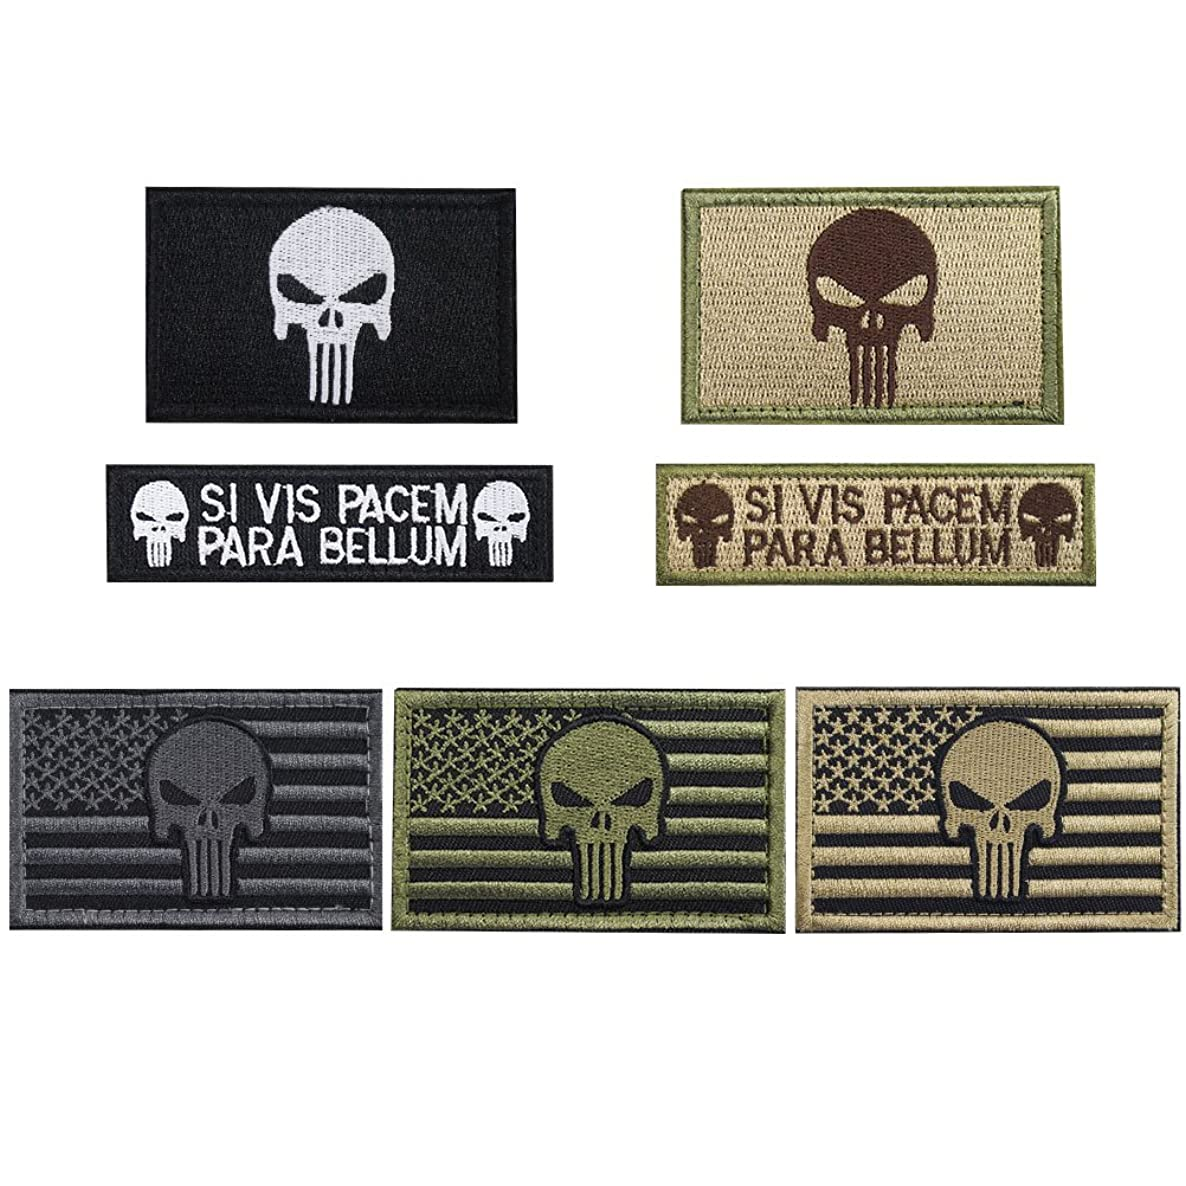 Creatrill Bundle 7 Pieces American Flag Tactical Military Morale Patch Set for Caps,Bags,Backpacks,Tactical Vest,Military Uniforms